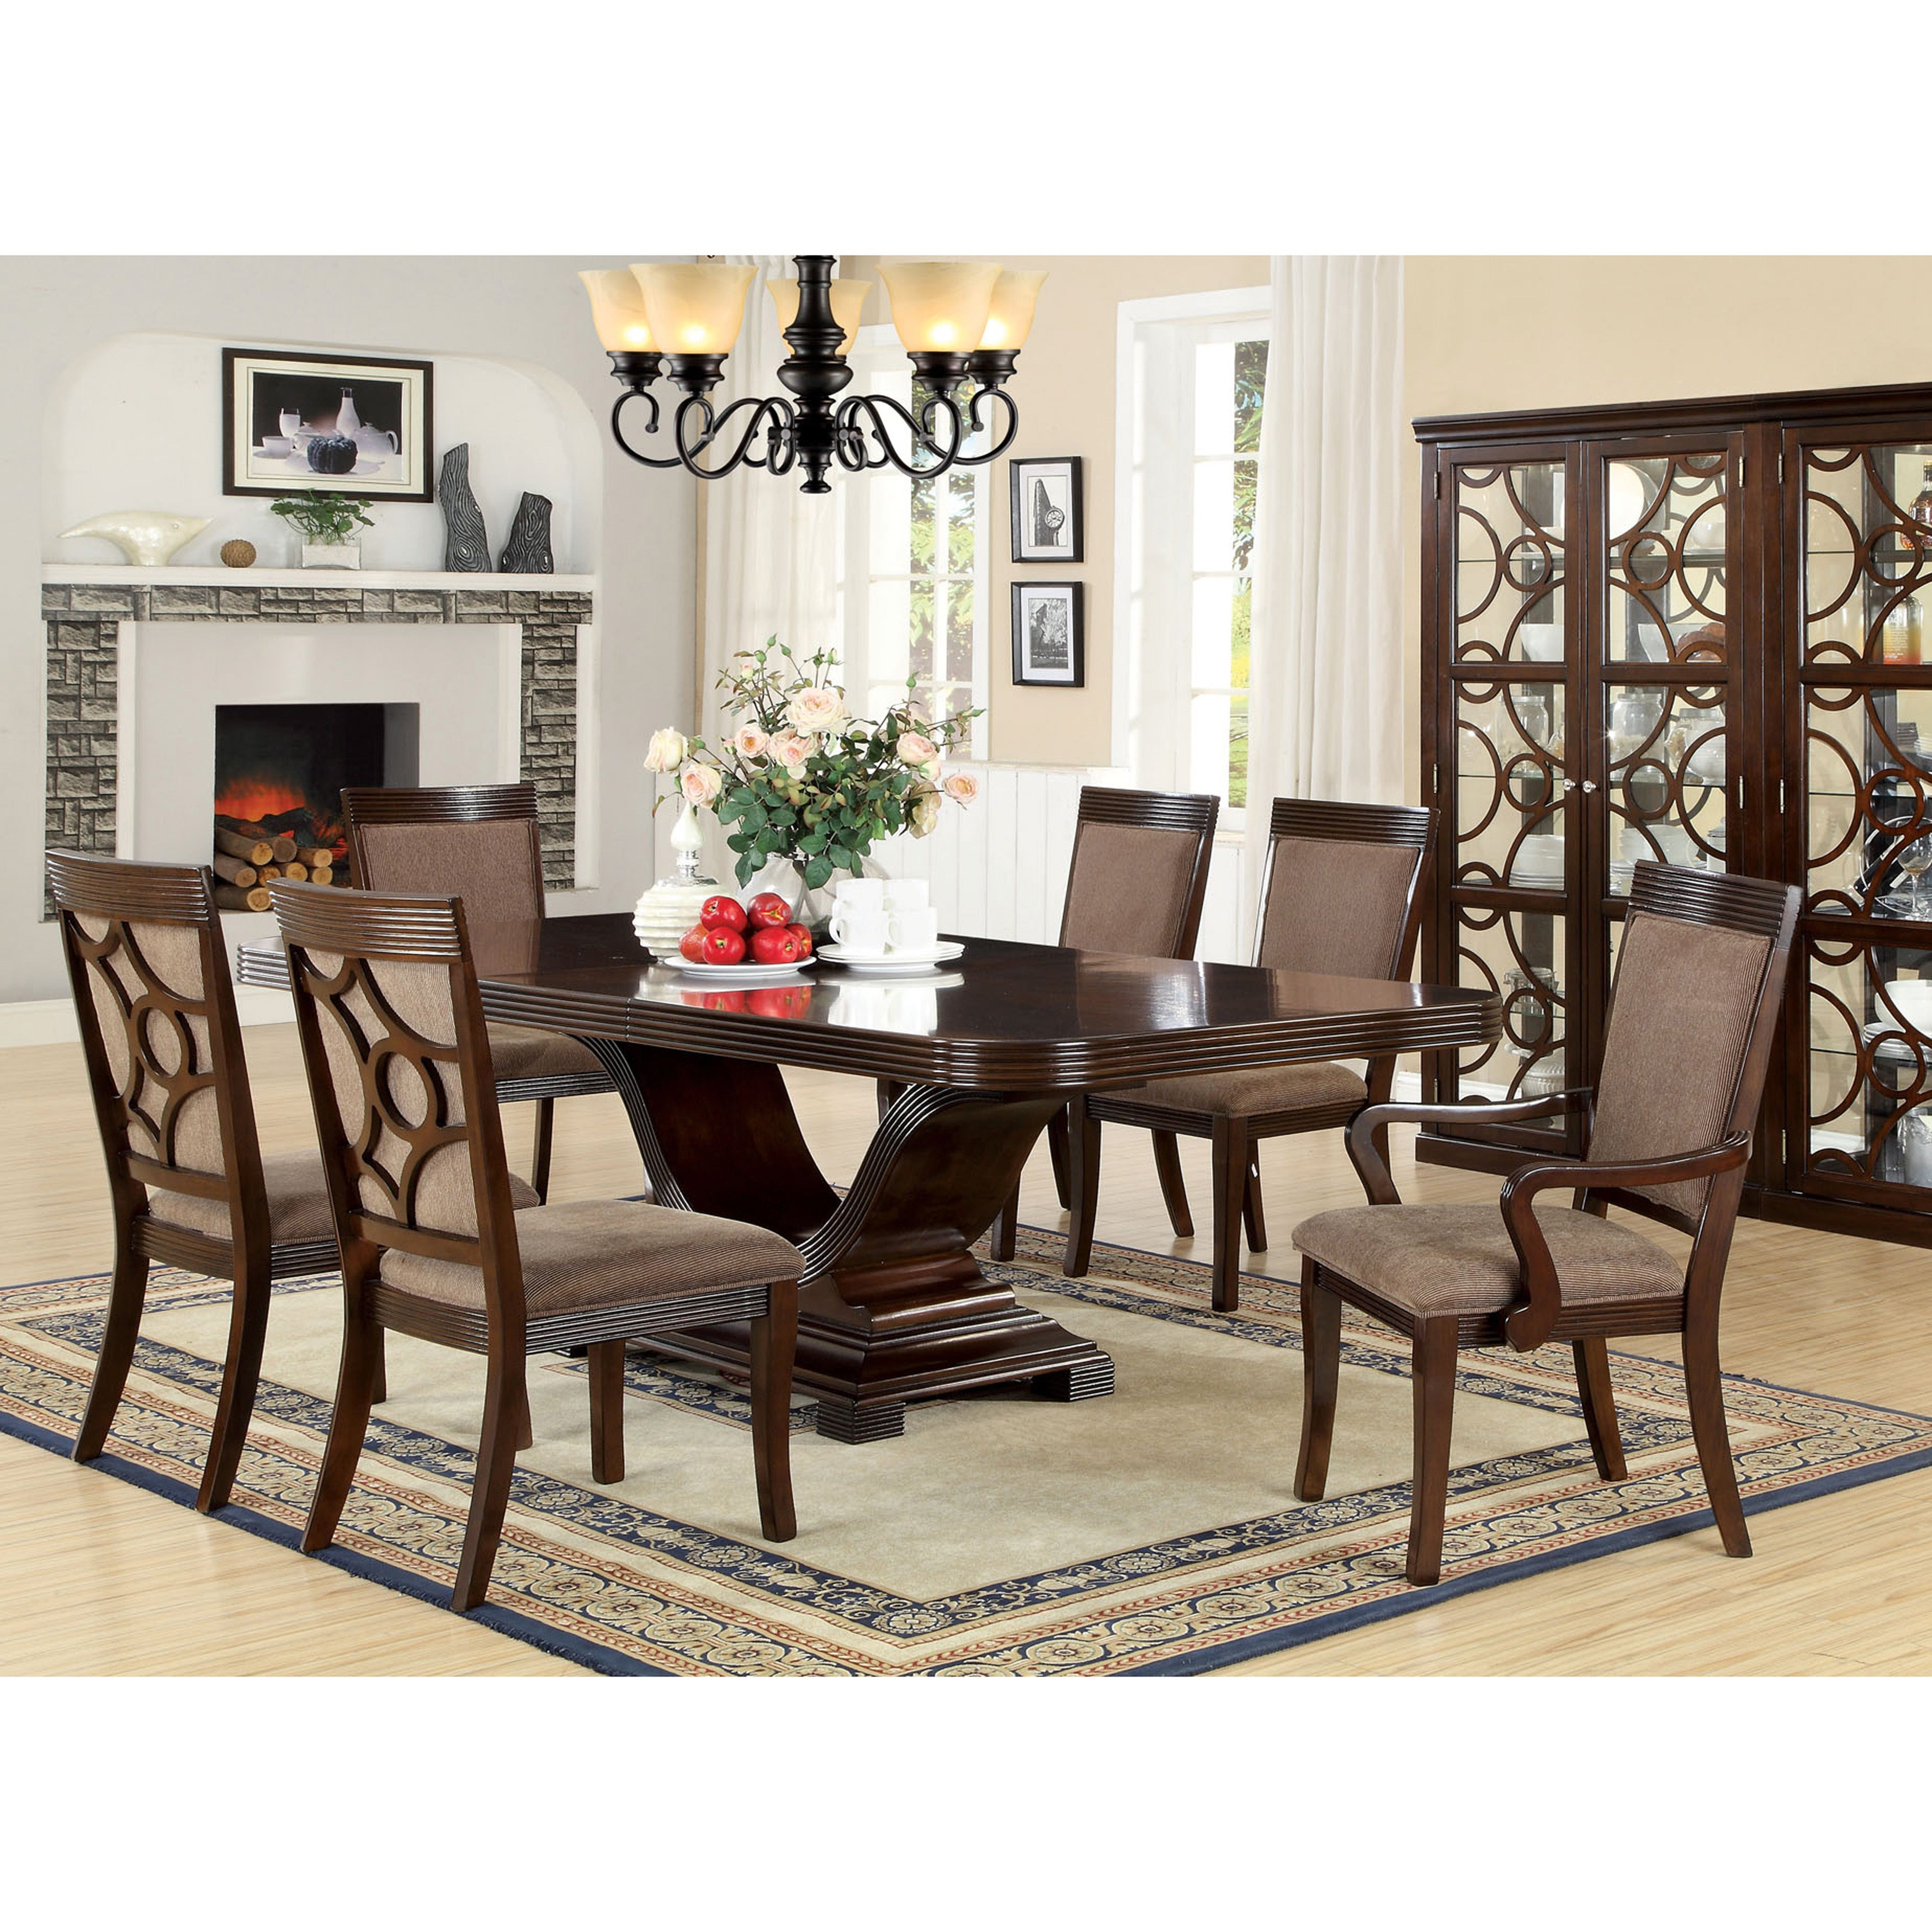 Sensational Woodburly Contemporary Walnut Dining Table With 20 Inch Leaf By Foa Cjindustries Chair Design For Home Cjindustriesco